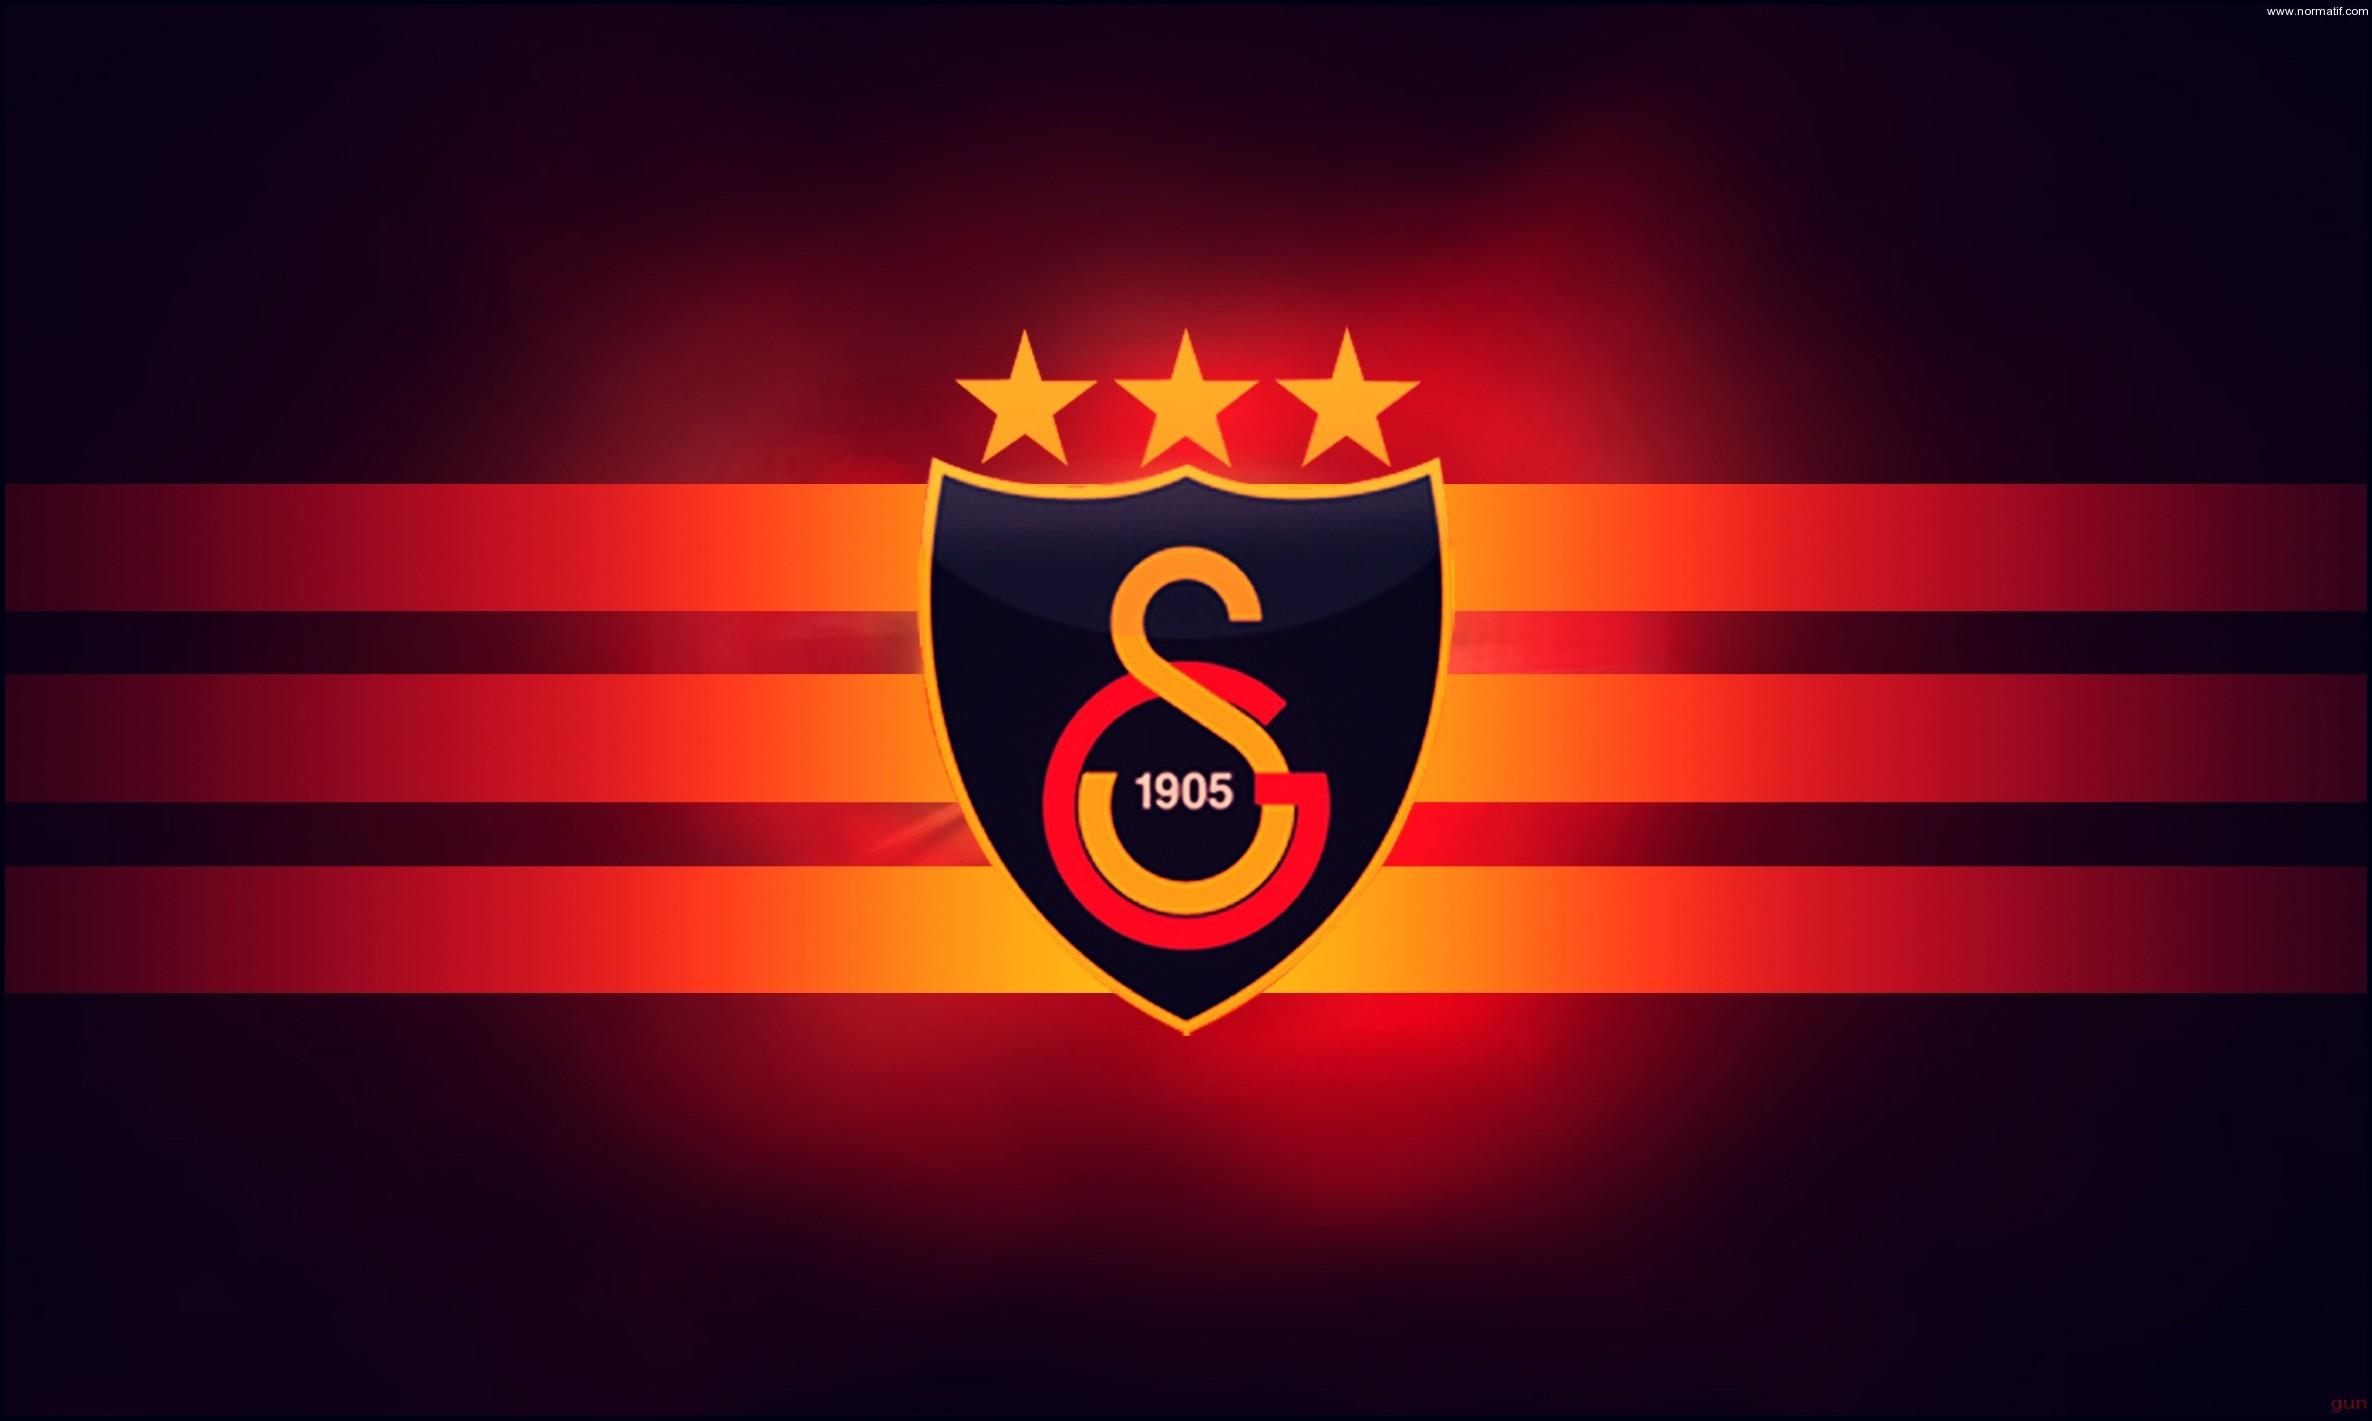 Galatasaray Wallpaper görsel resimler download wallpaper